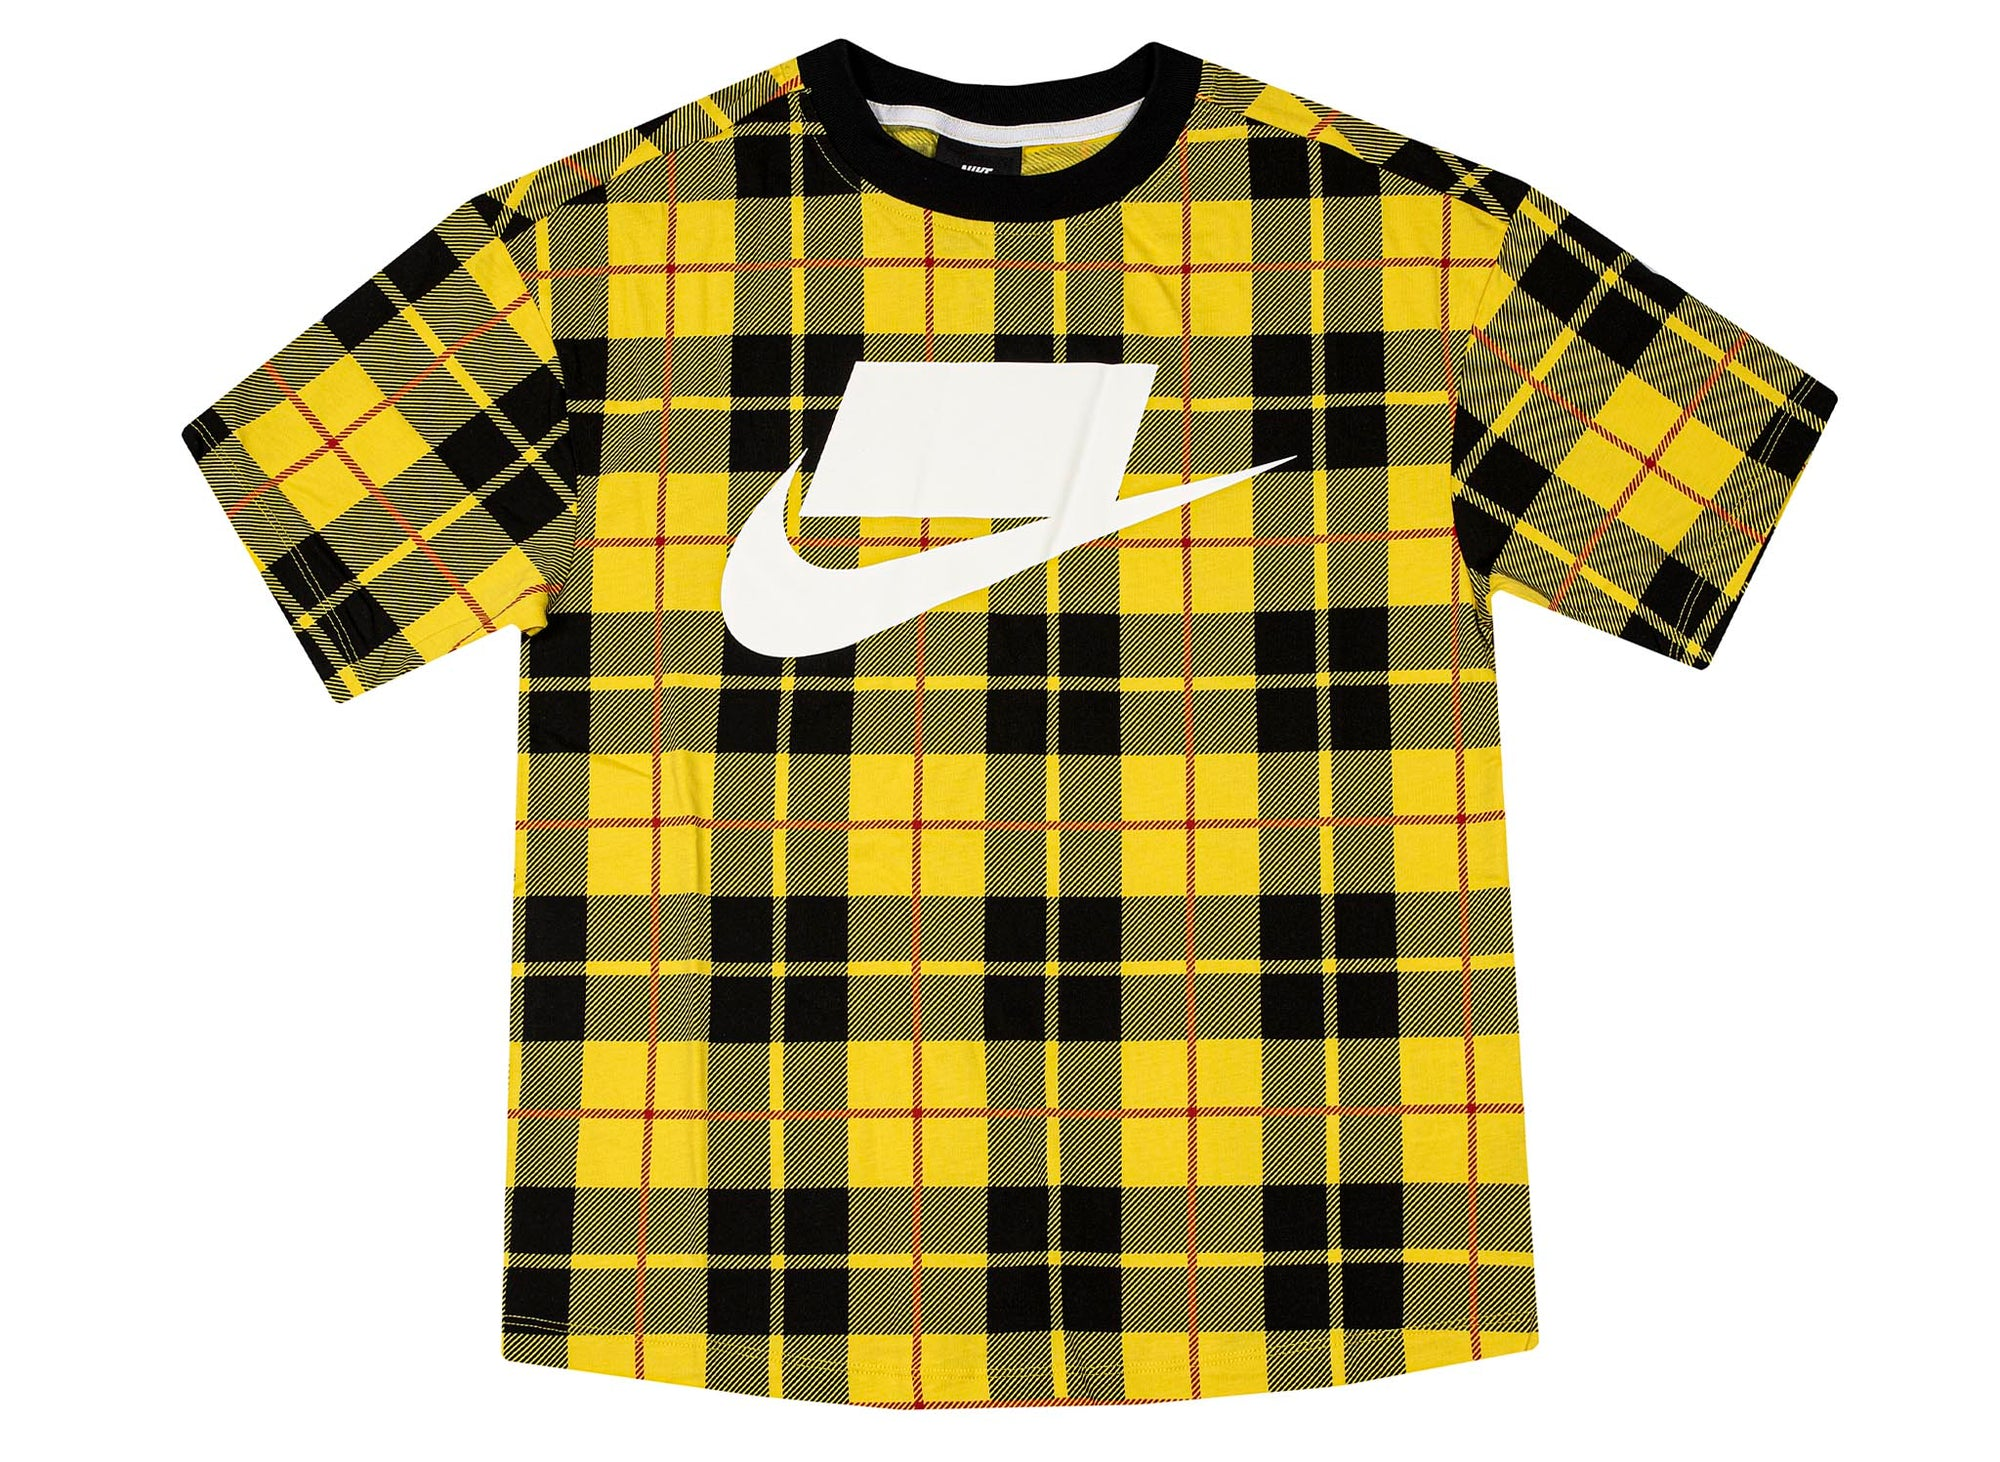 Nike Sportswear Women's Short-Sleeve Printed Top 'Yellow Plaid'